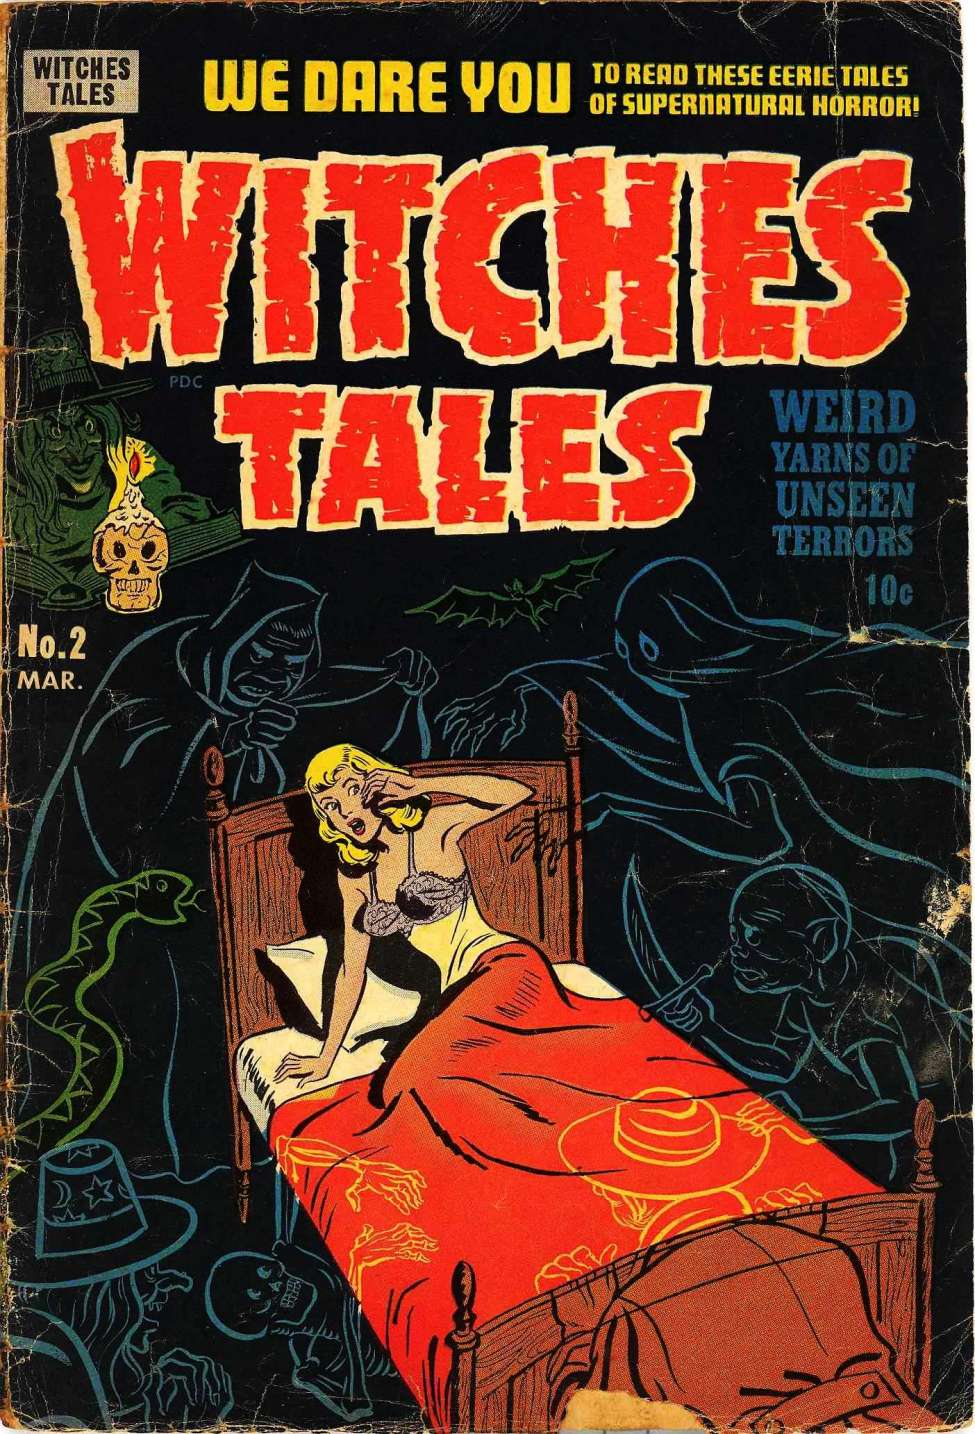 Comic Book Cover For Witches Tales #2